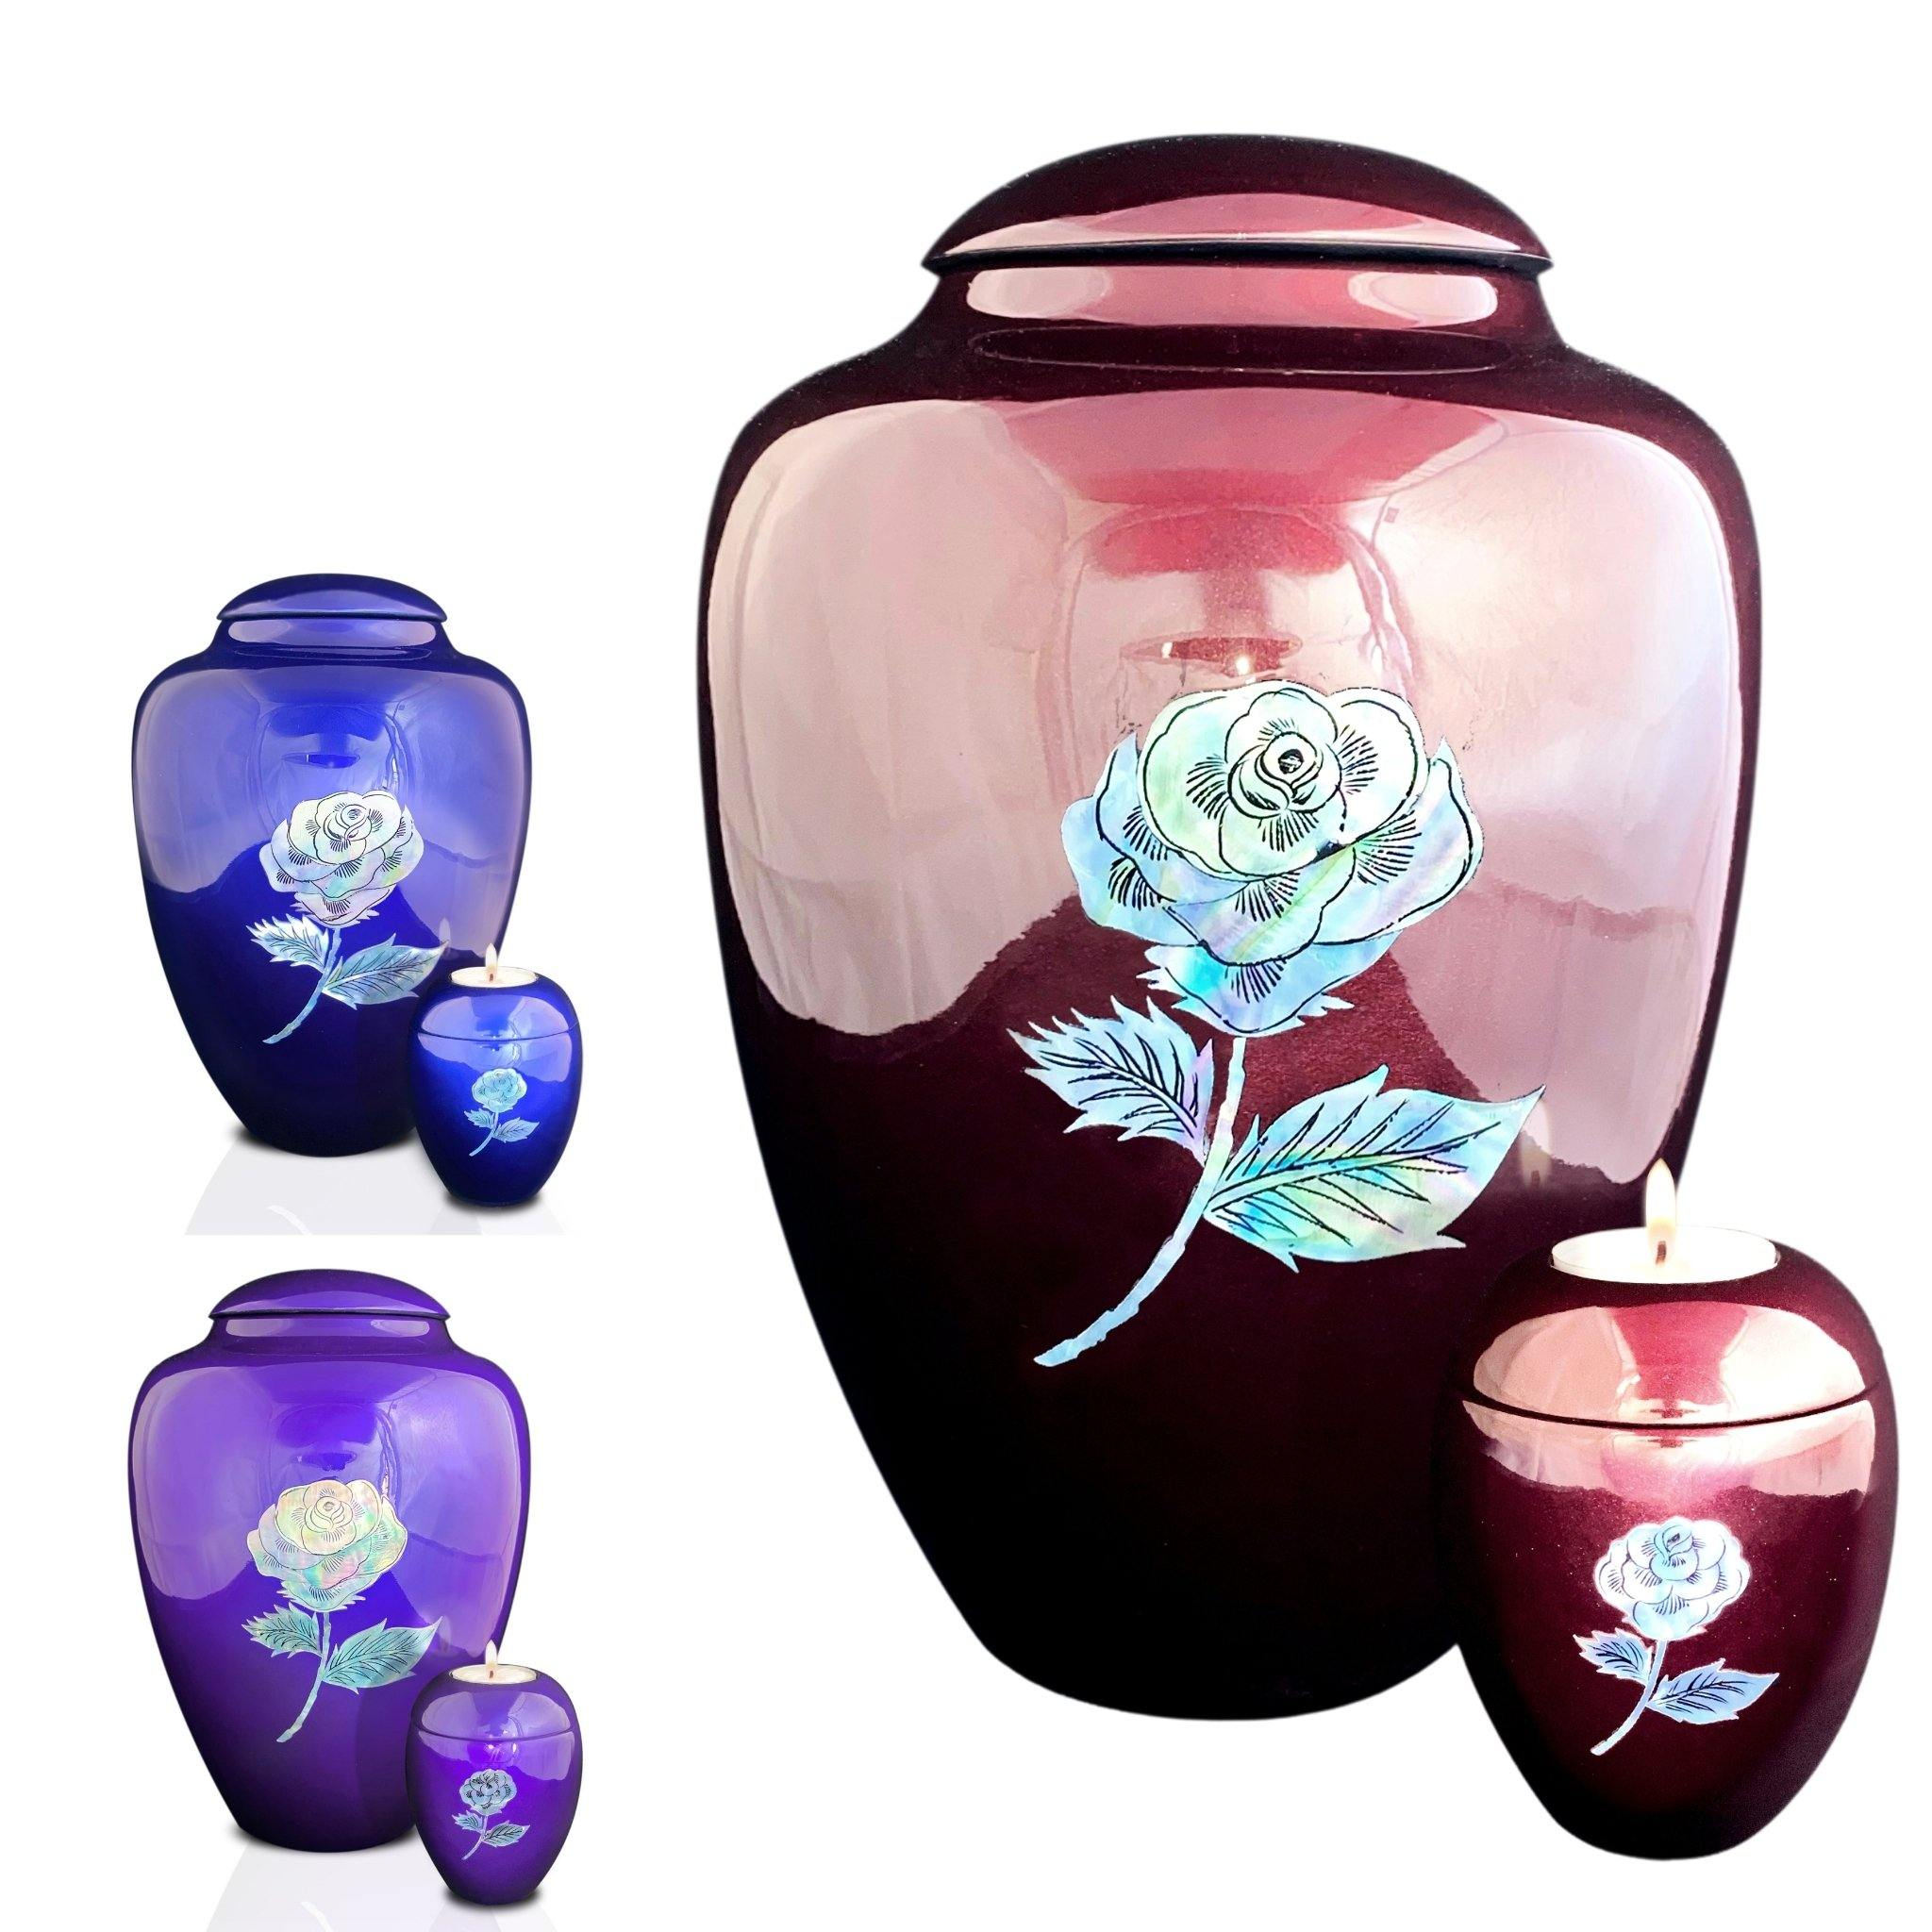 Eskdale  Rose Cremation Ashes Urn Range - Urns UK